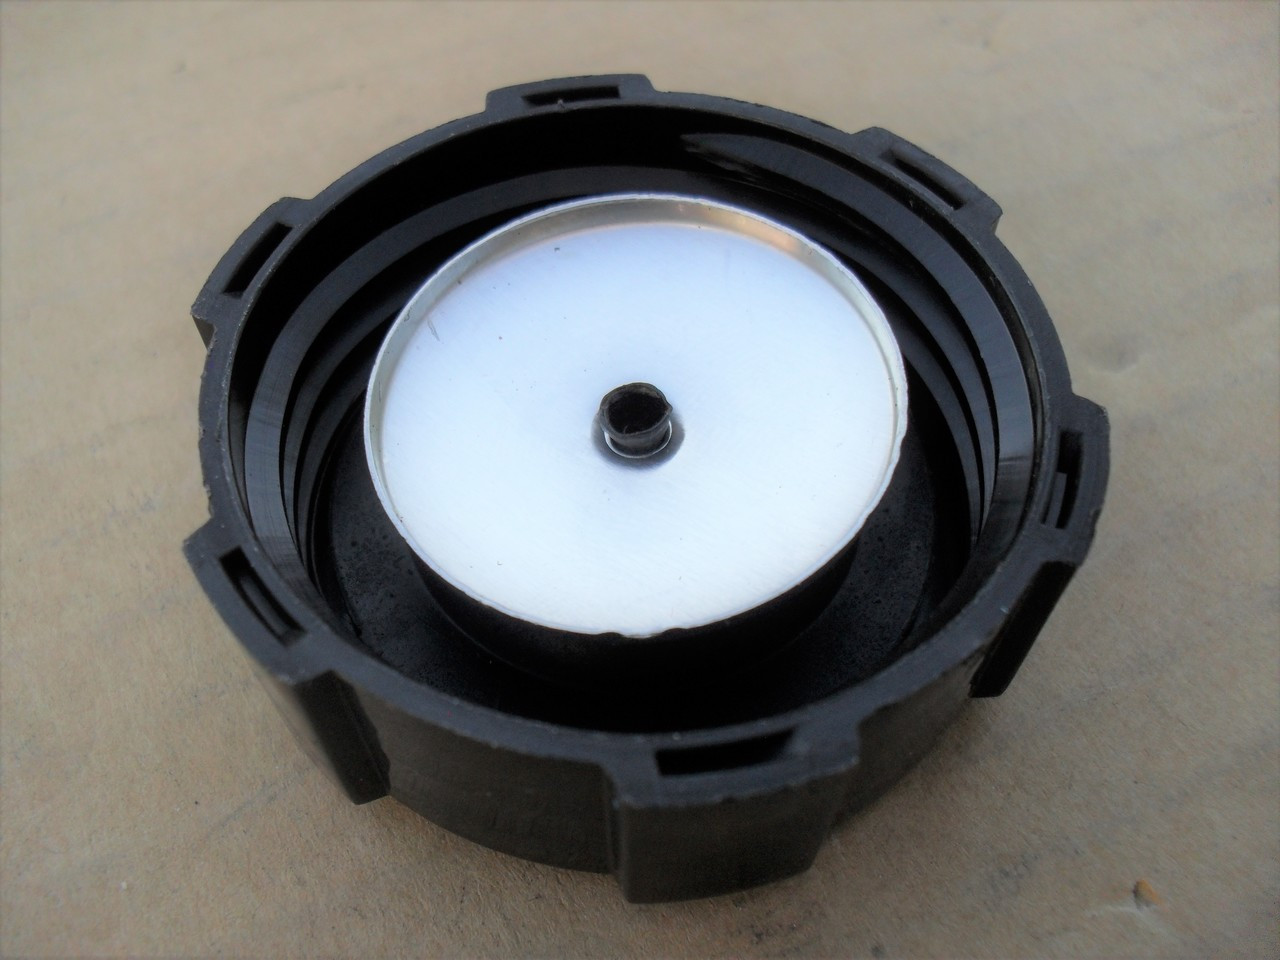 Gas Fuel Cap for Briggs and Stratton 3.5 thru 6 HP vertical Max, Quantum and Europa engines 397974, 397974S, 4131, 4149, 4221, 4227, 493017, 5044, 5044H, 5044K, 692046, 793606 &